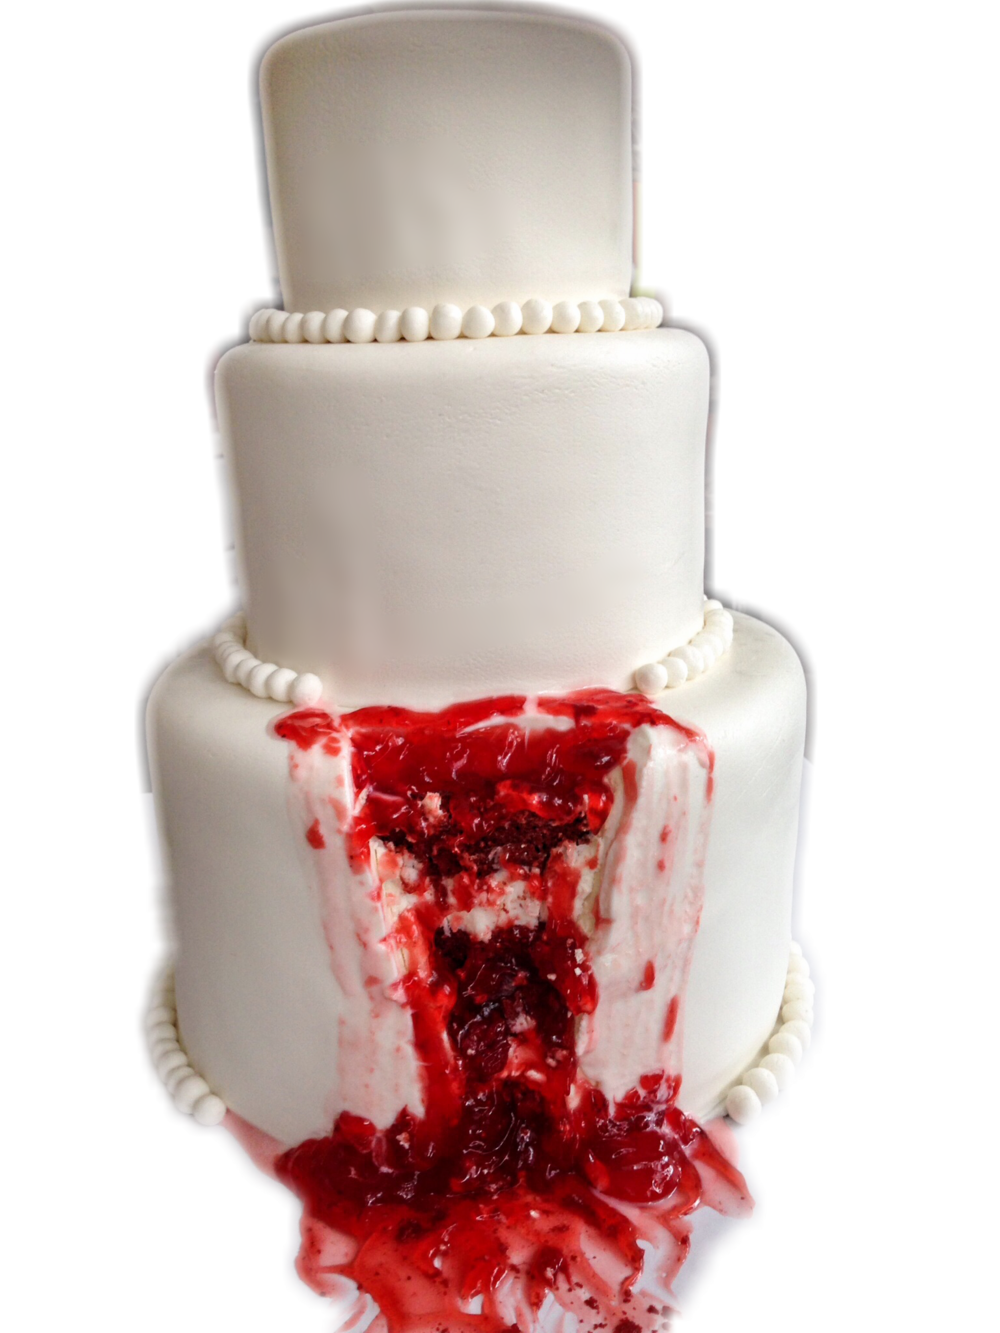 Bloody Halloween Wedding Cake